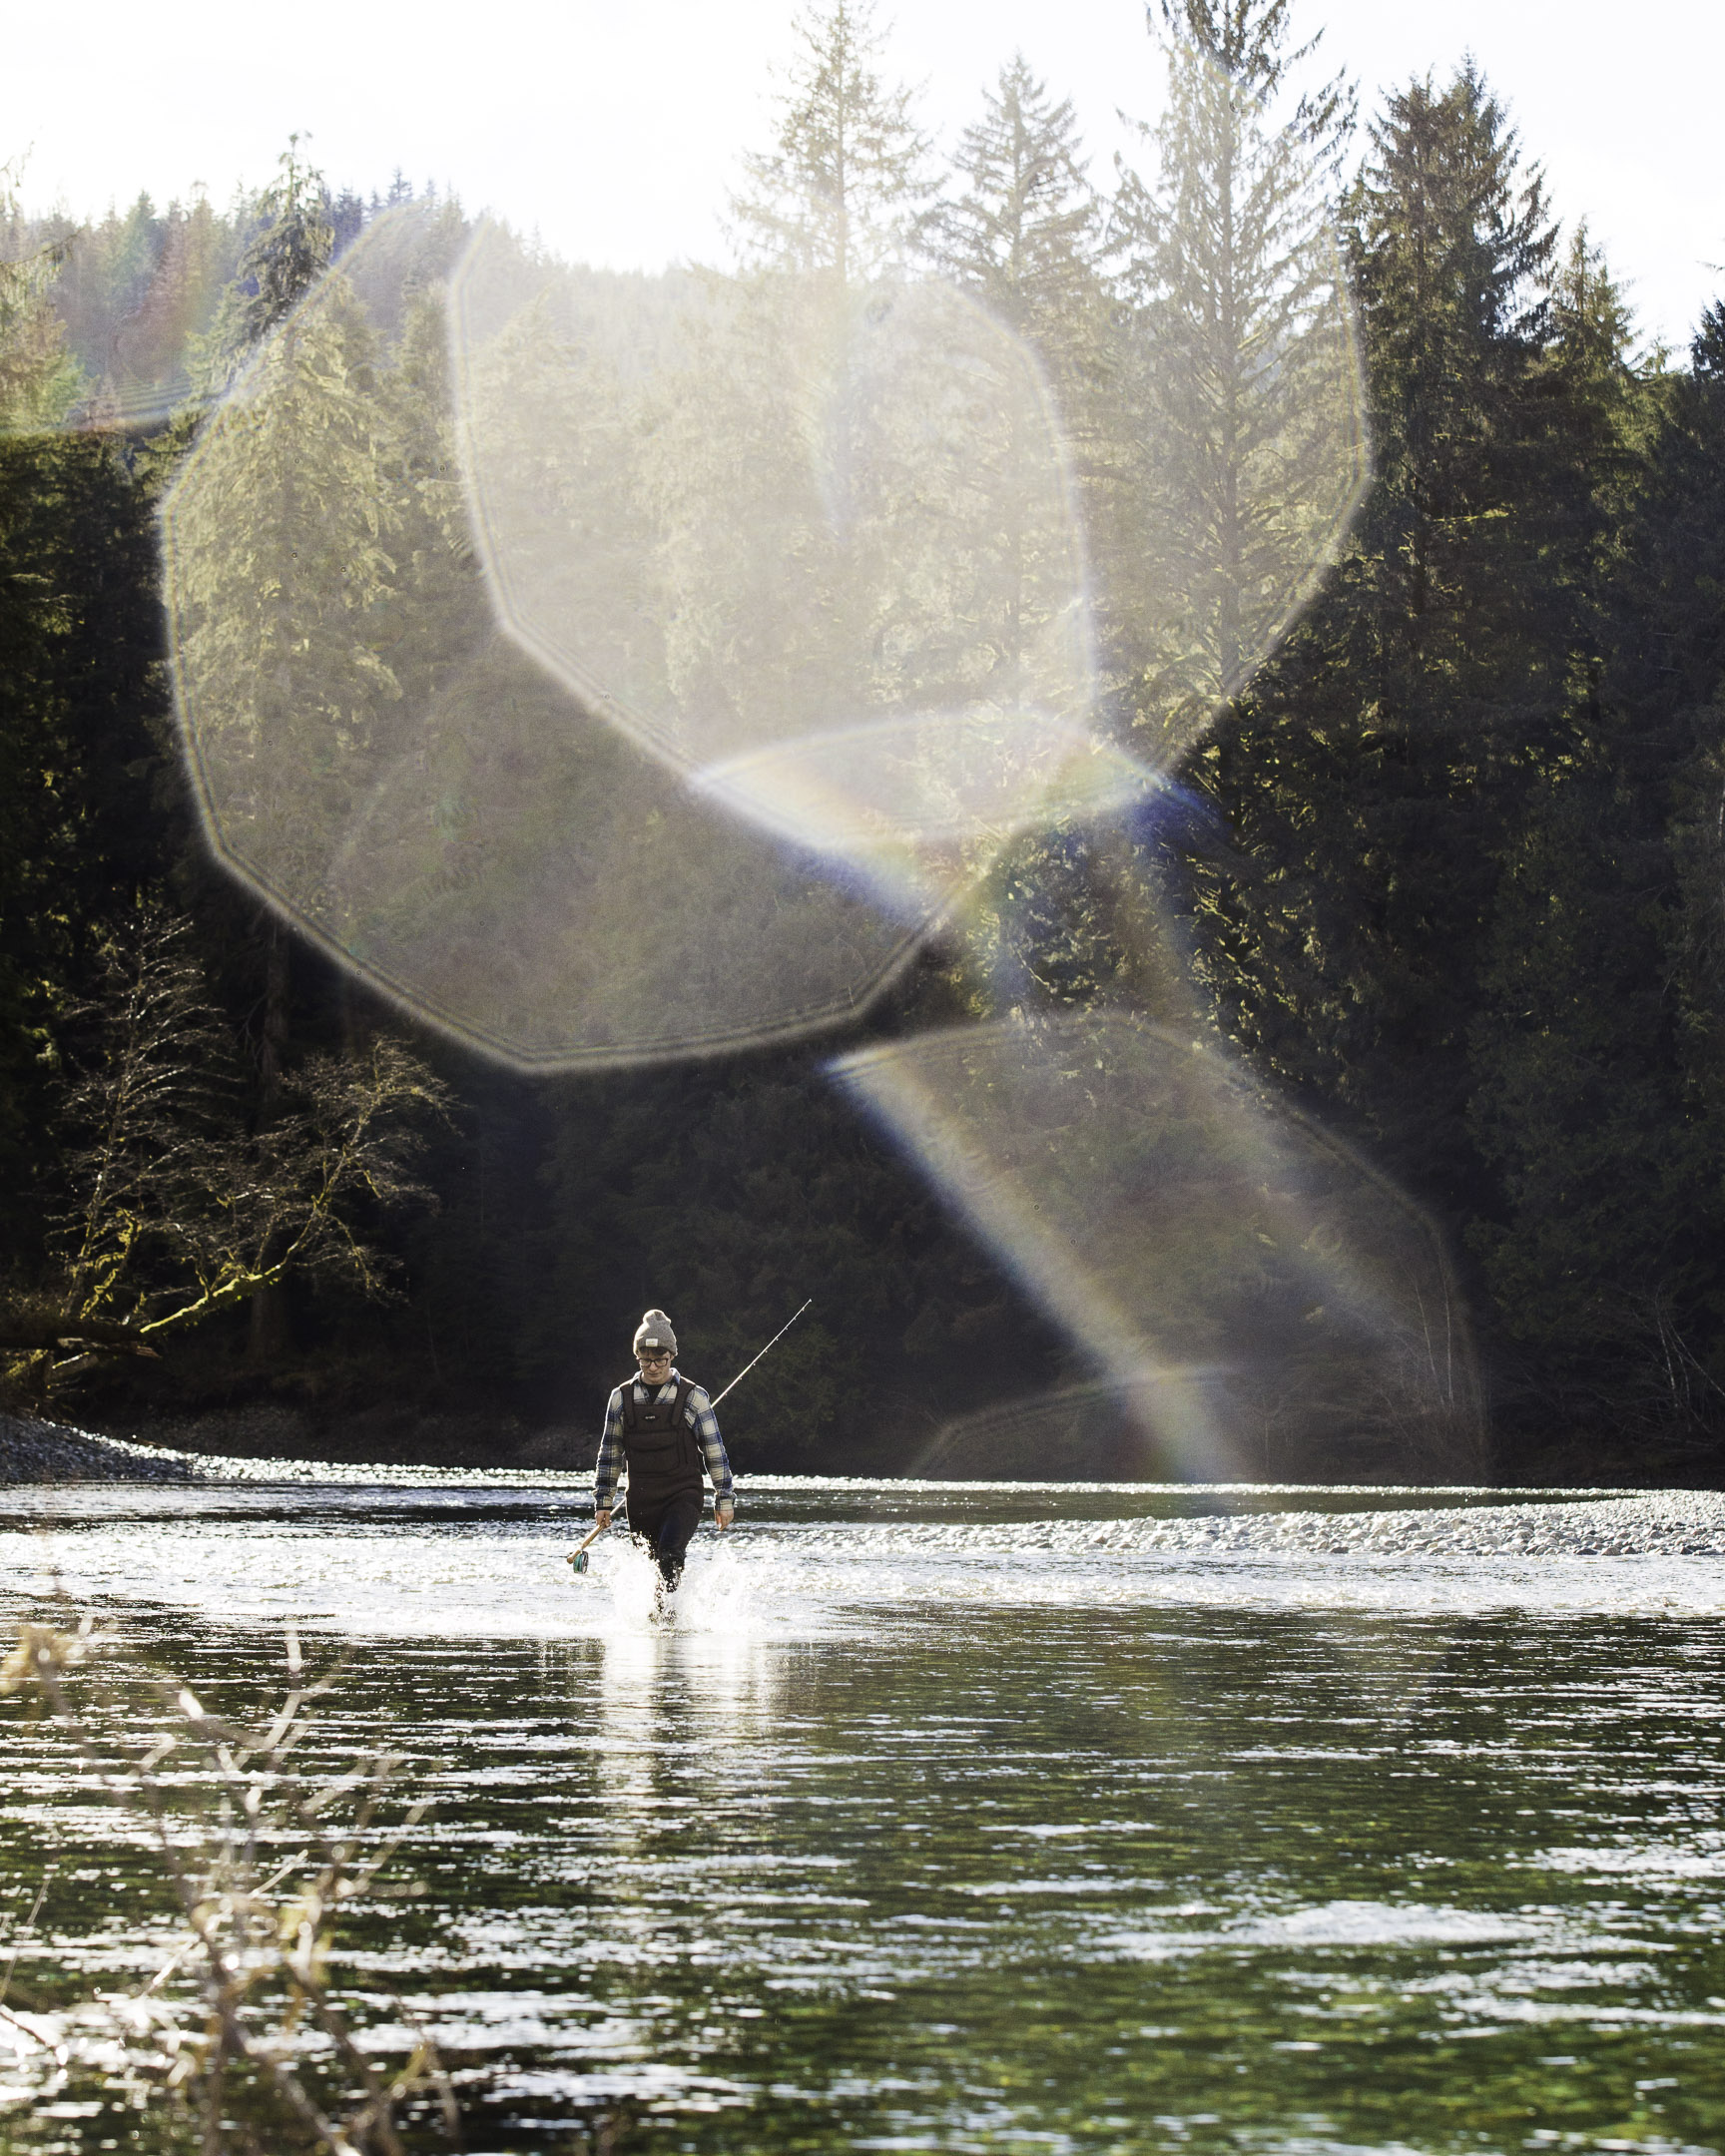 A fisherman walking up the Gordon River in Port Renfrew, BC, Canada